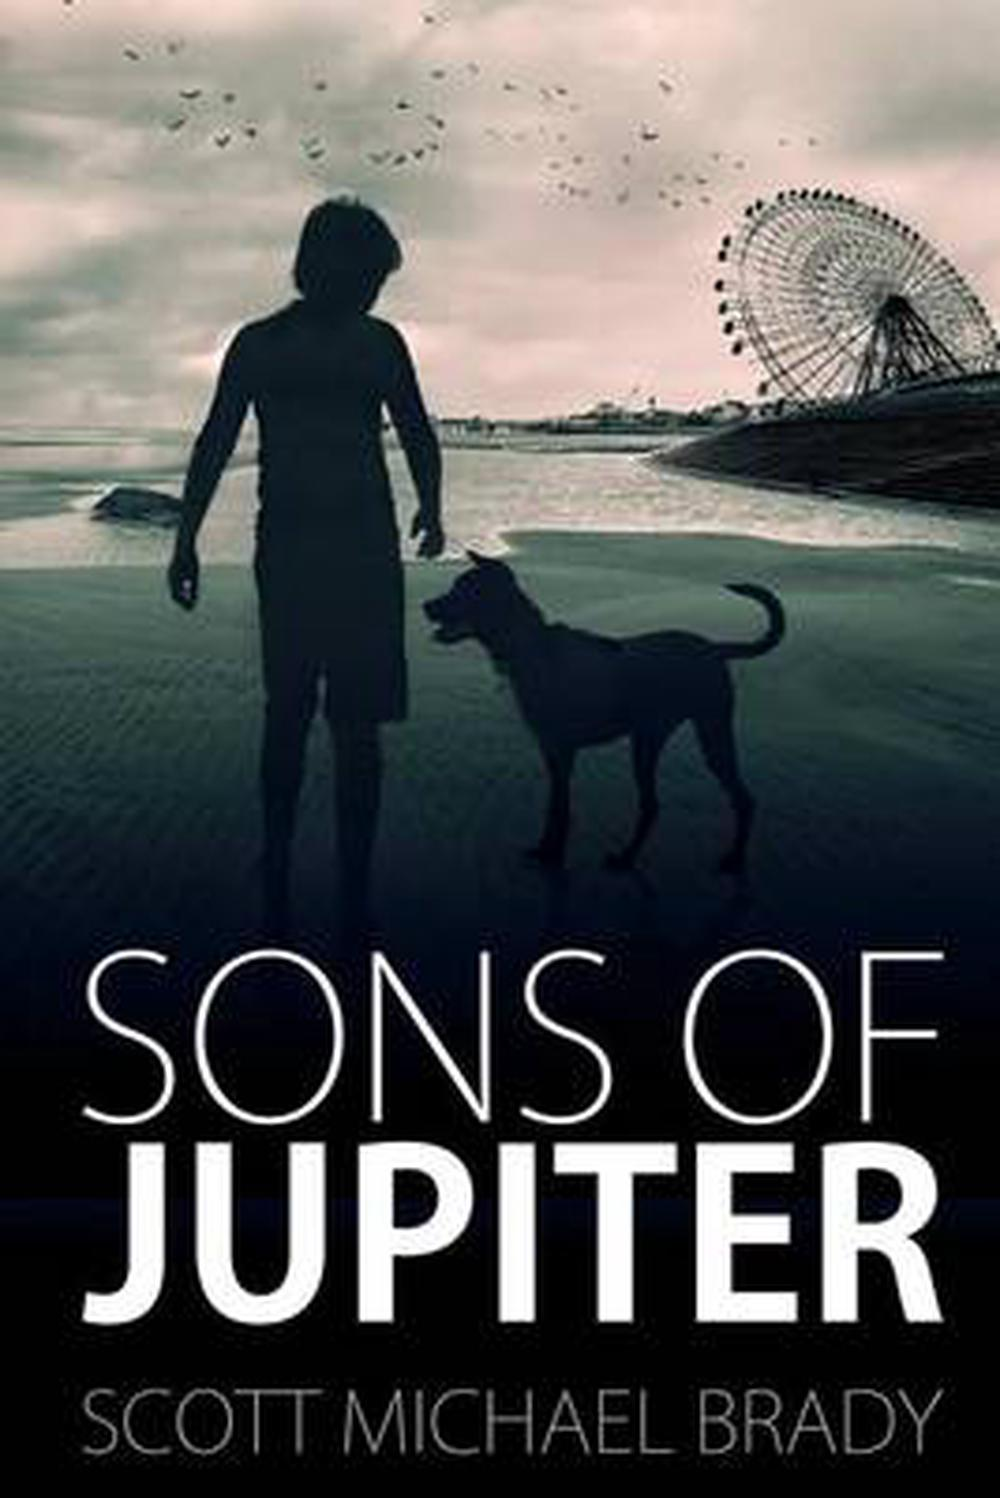 Sons-of-Jupiter-by-Scott-Michael-Brady-English-Paperback-Book-Free-Shipping